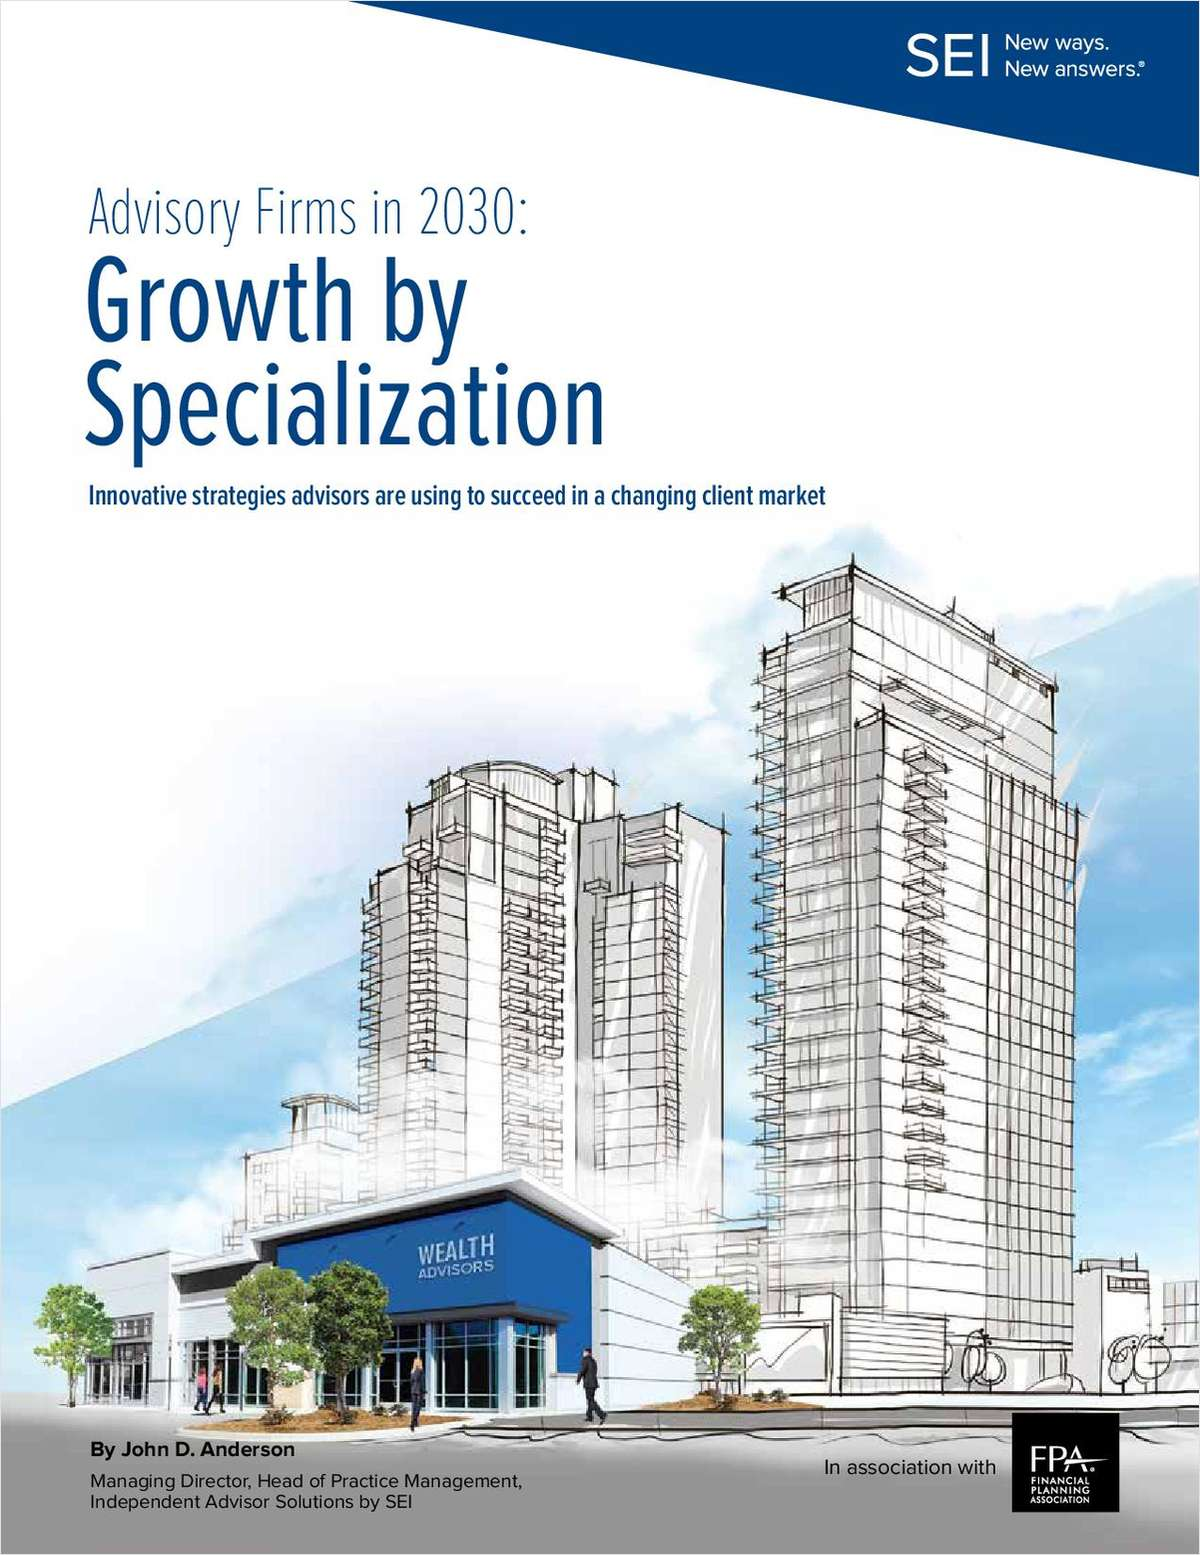 Advisory Firms in 2030: Growth by Specialization